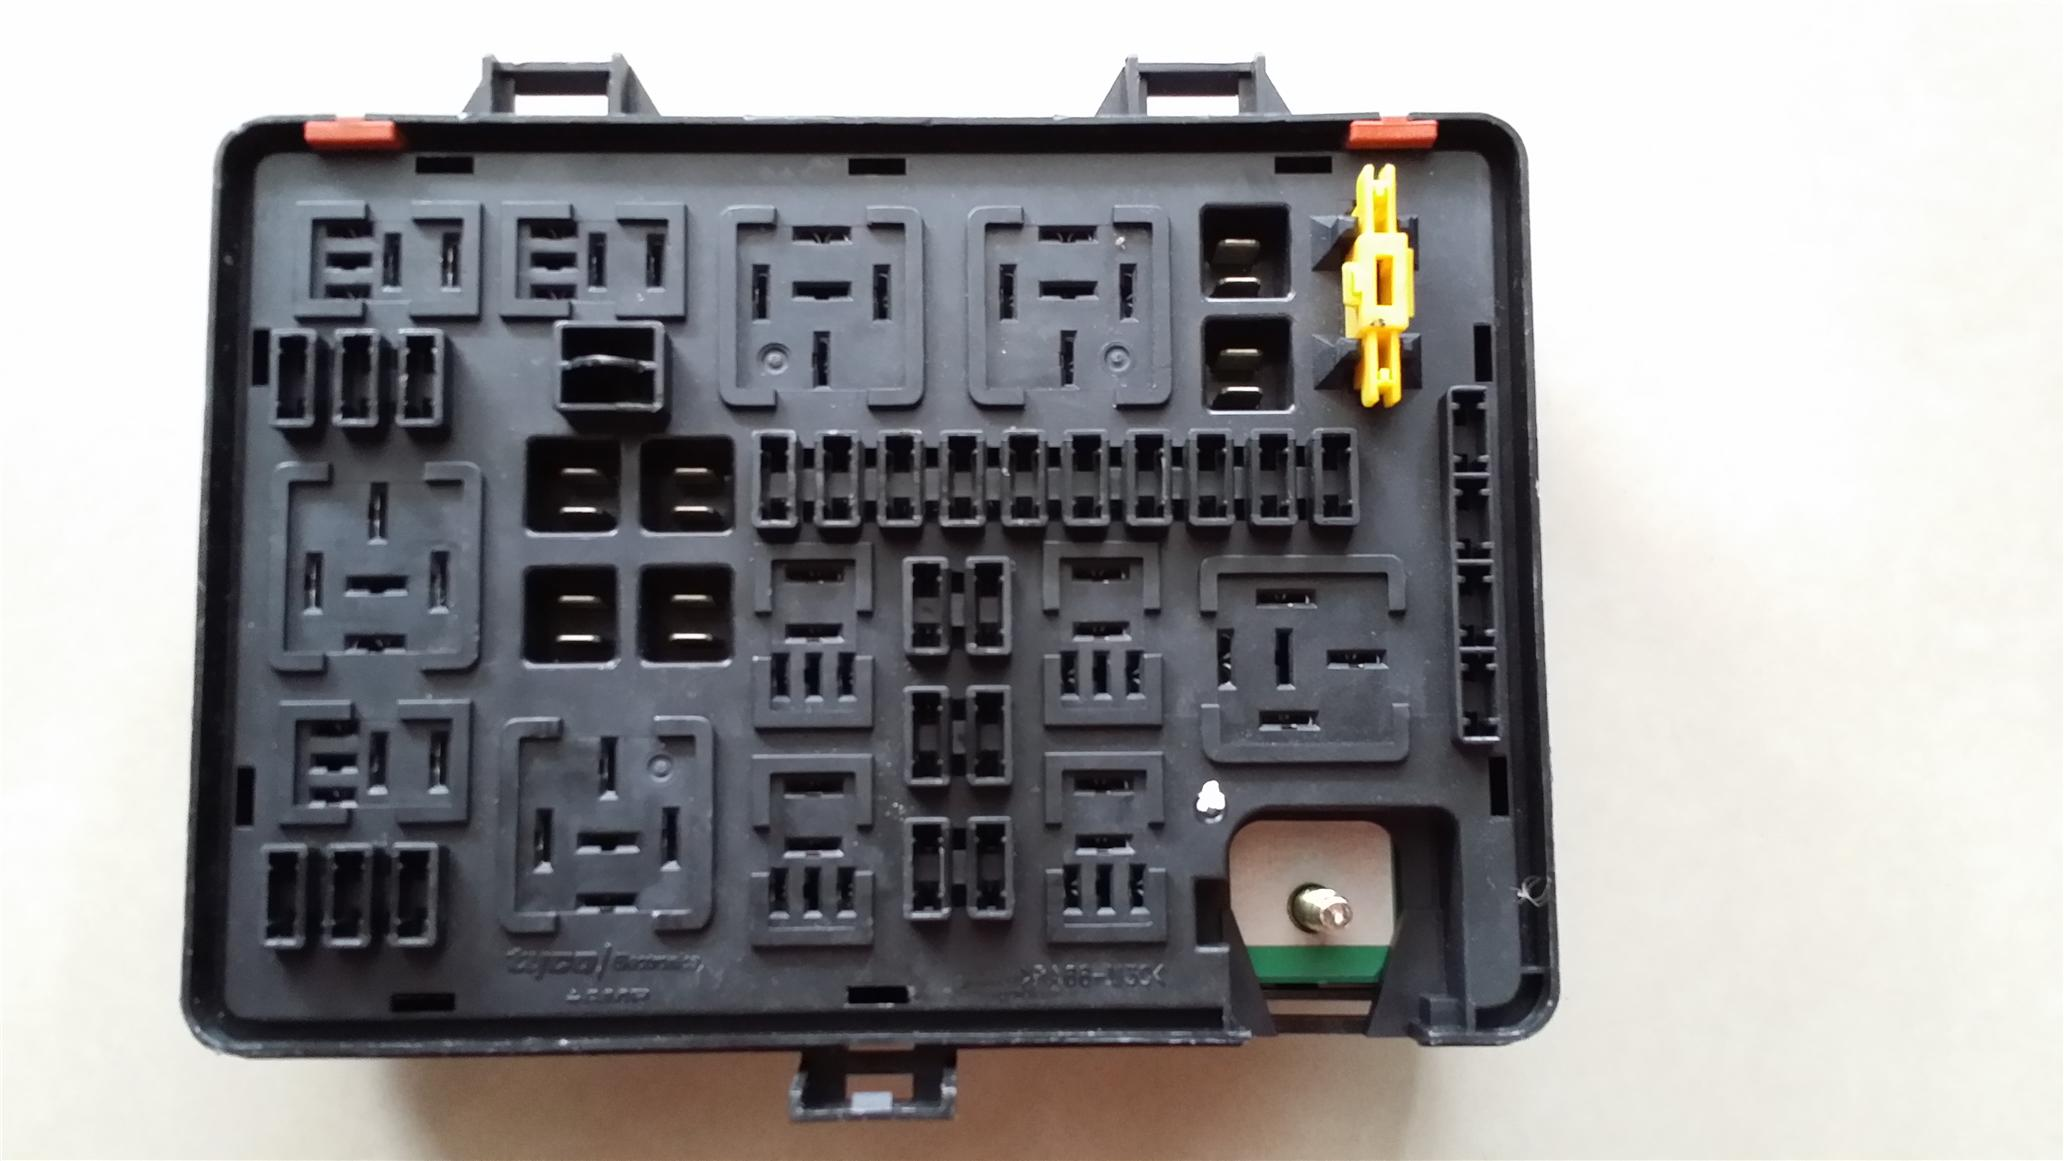 gen2 original main fuse box master star icon 1507 04 STAR_ICON@20 gen2 original main fuse box (master) (end 7 3 2016 10 15 pm) main fuse box car at webbmarketing.co